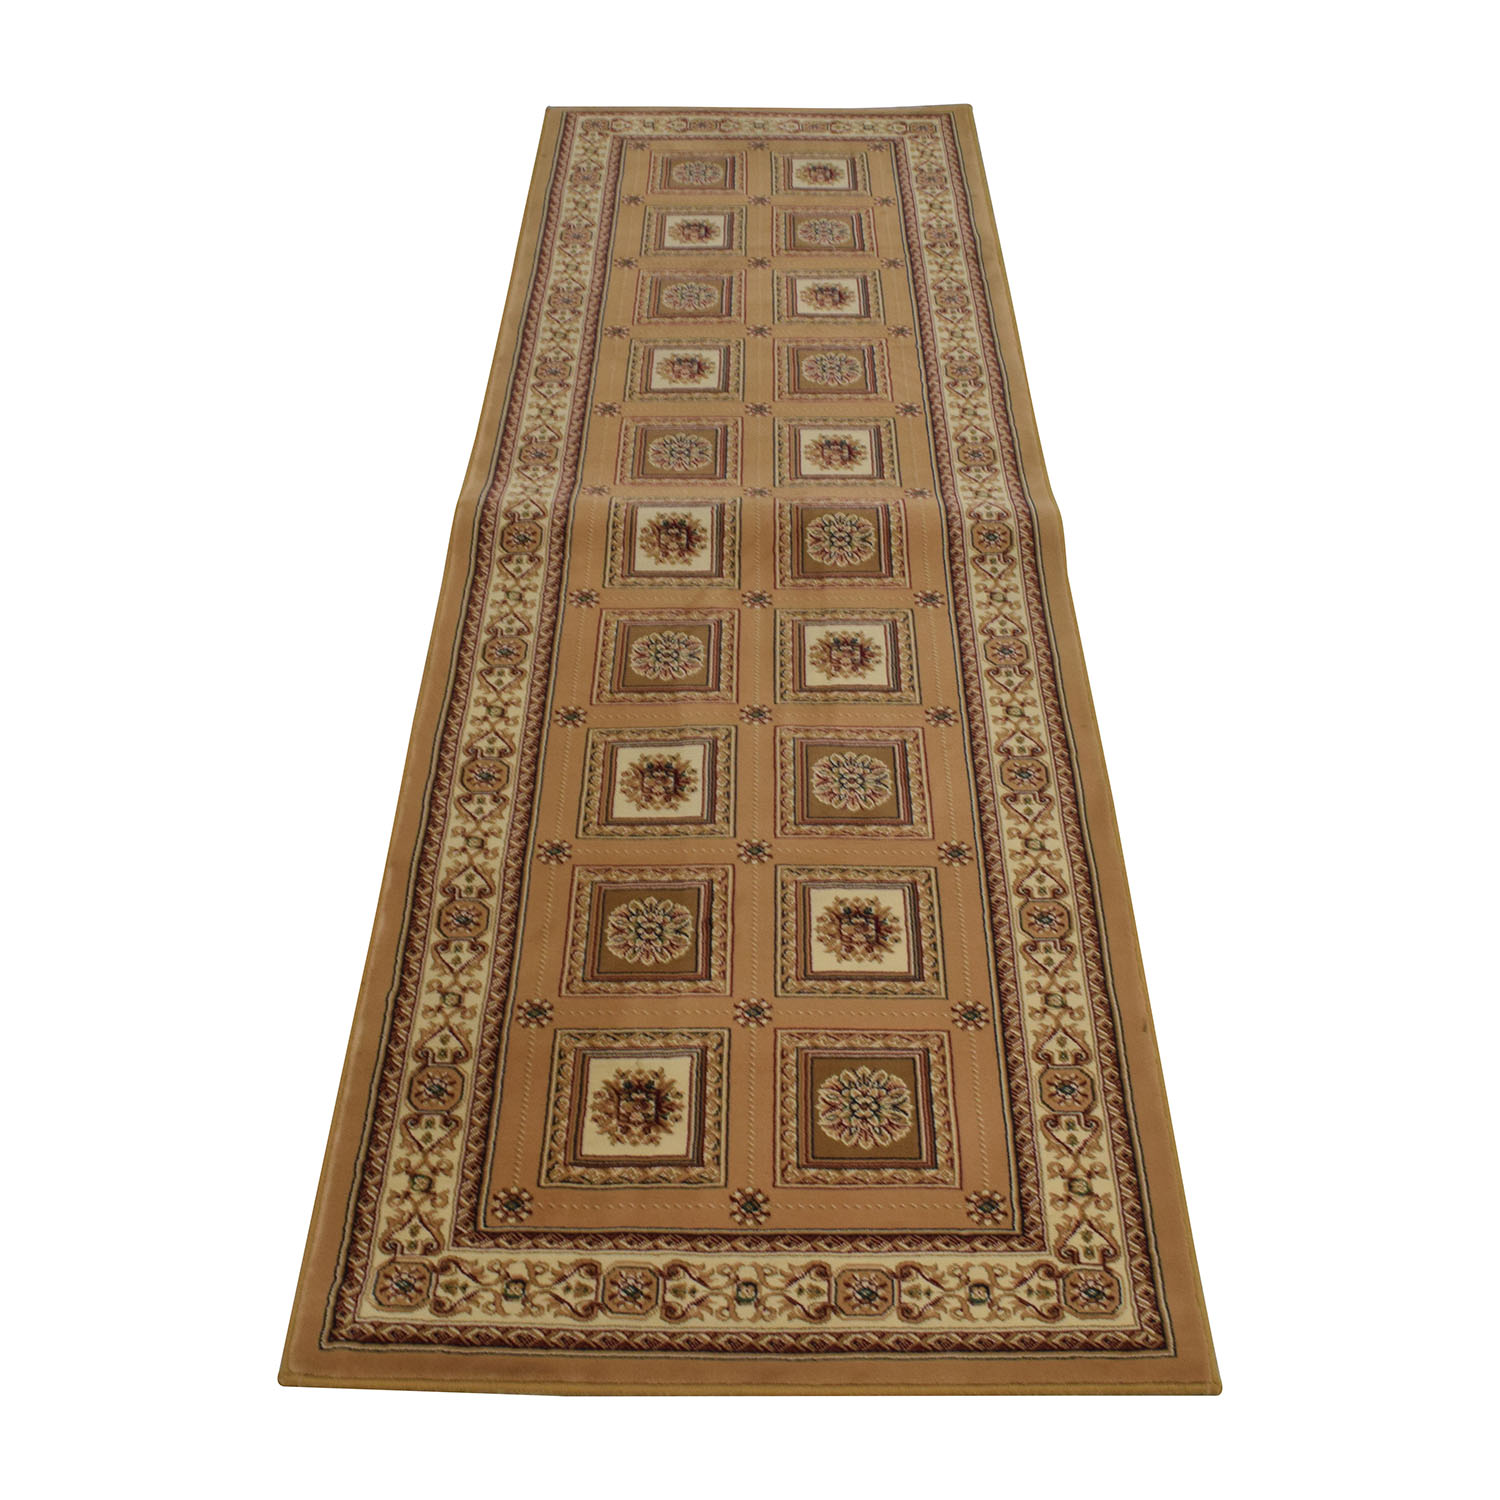 Regency Persian Tan 27 x 76 Rug Runner / Decor